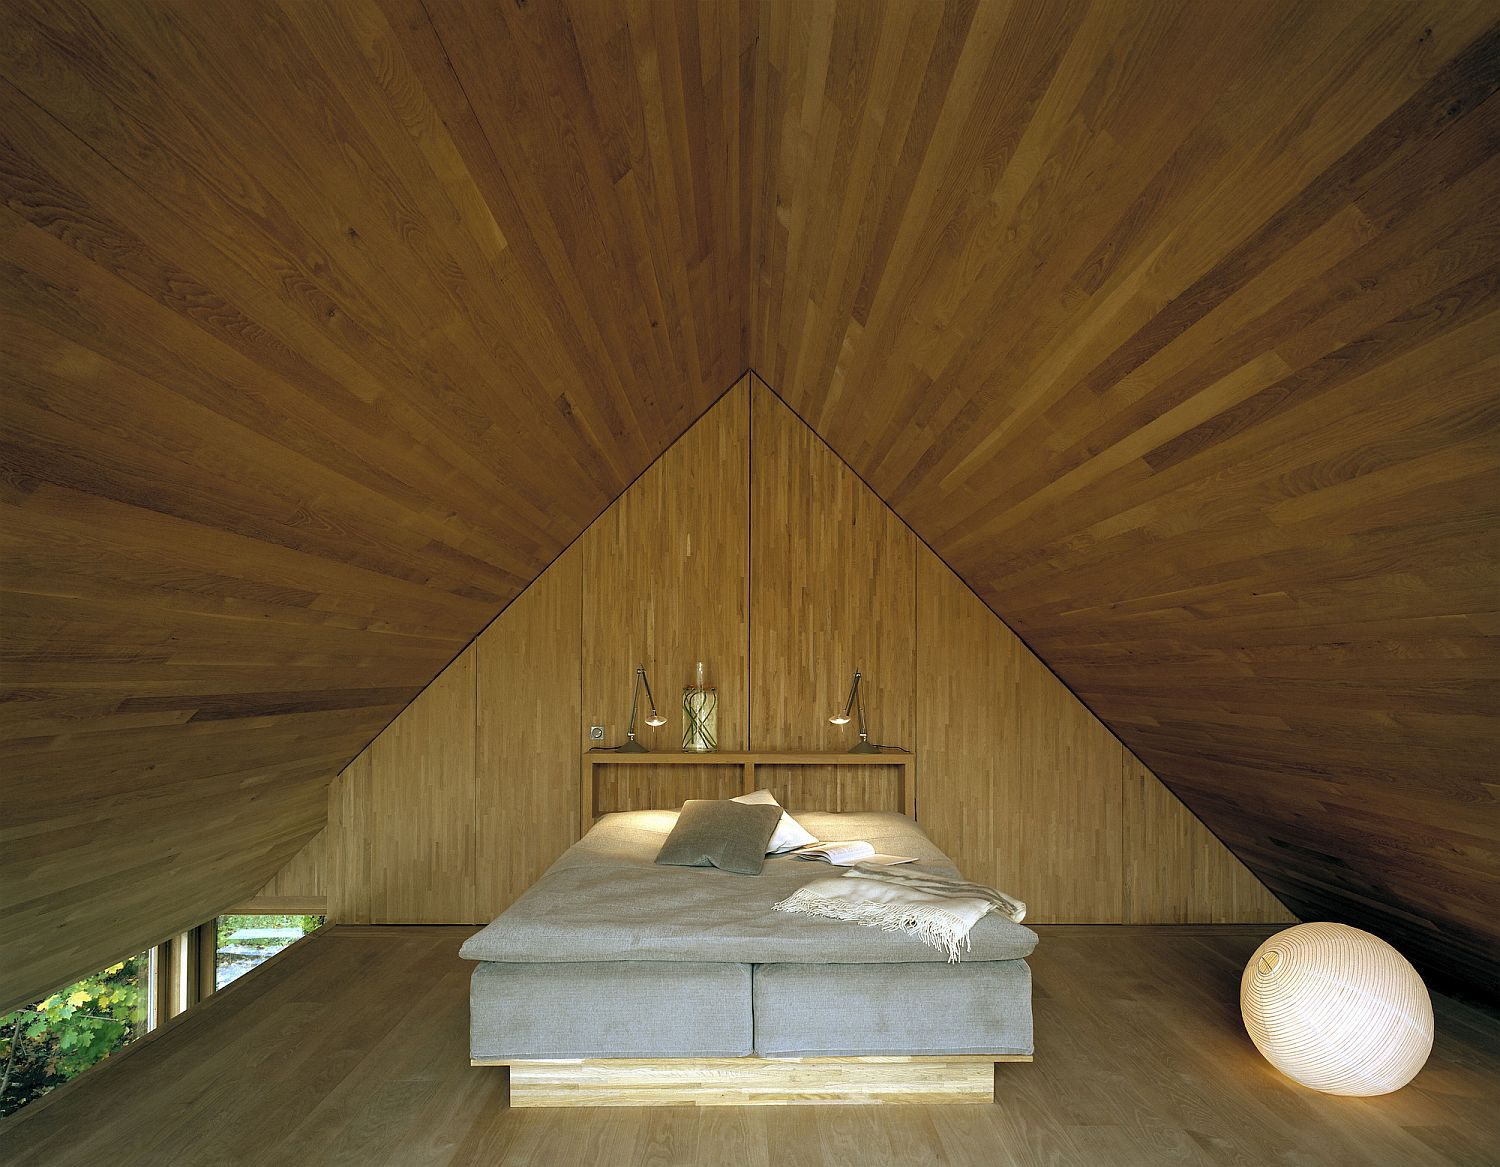 Attic bedroom feels serene and magical as it takes you into a minimal world